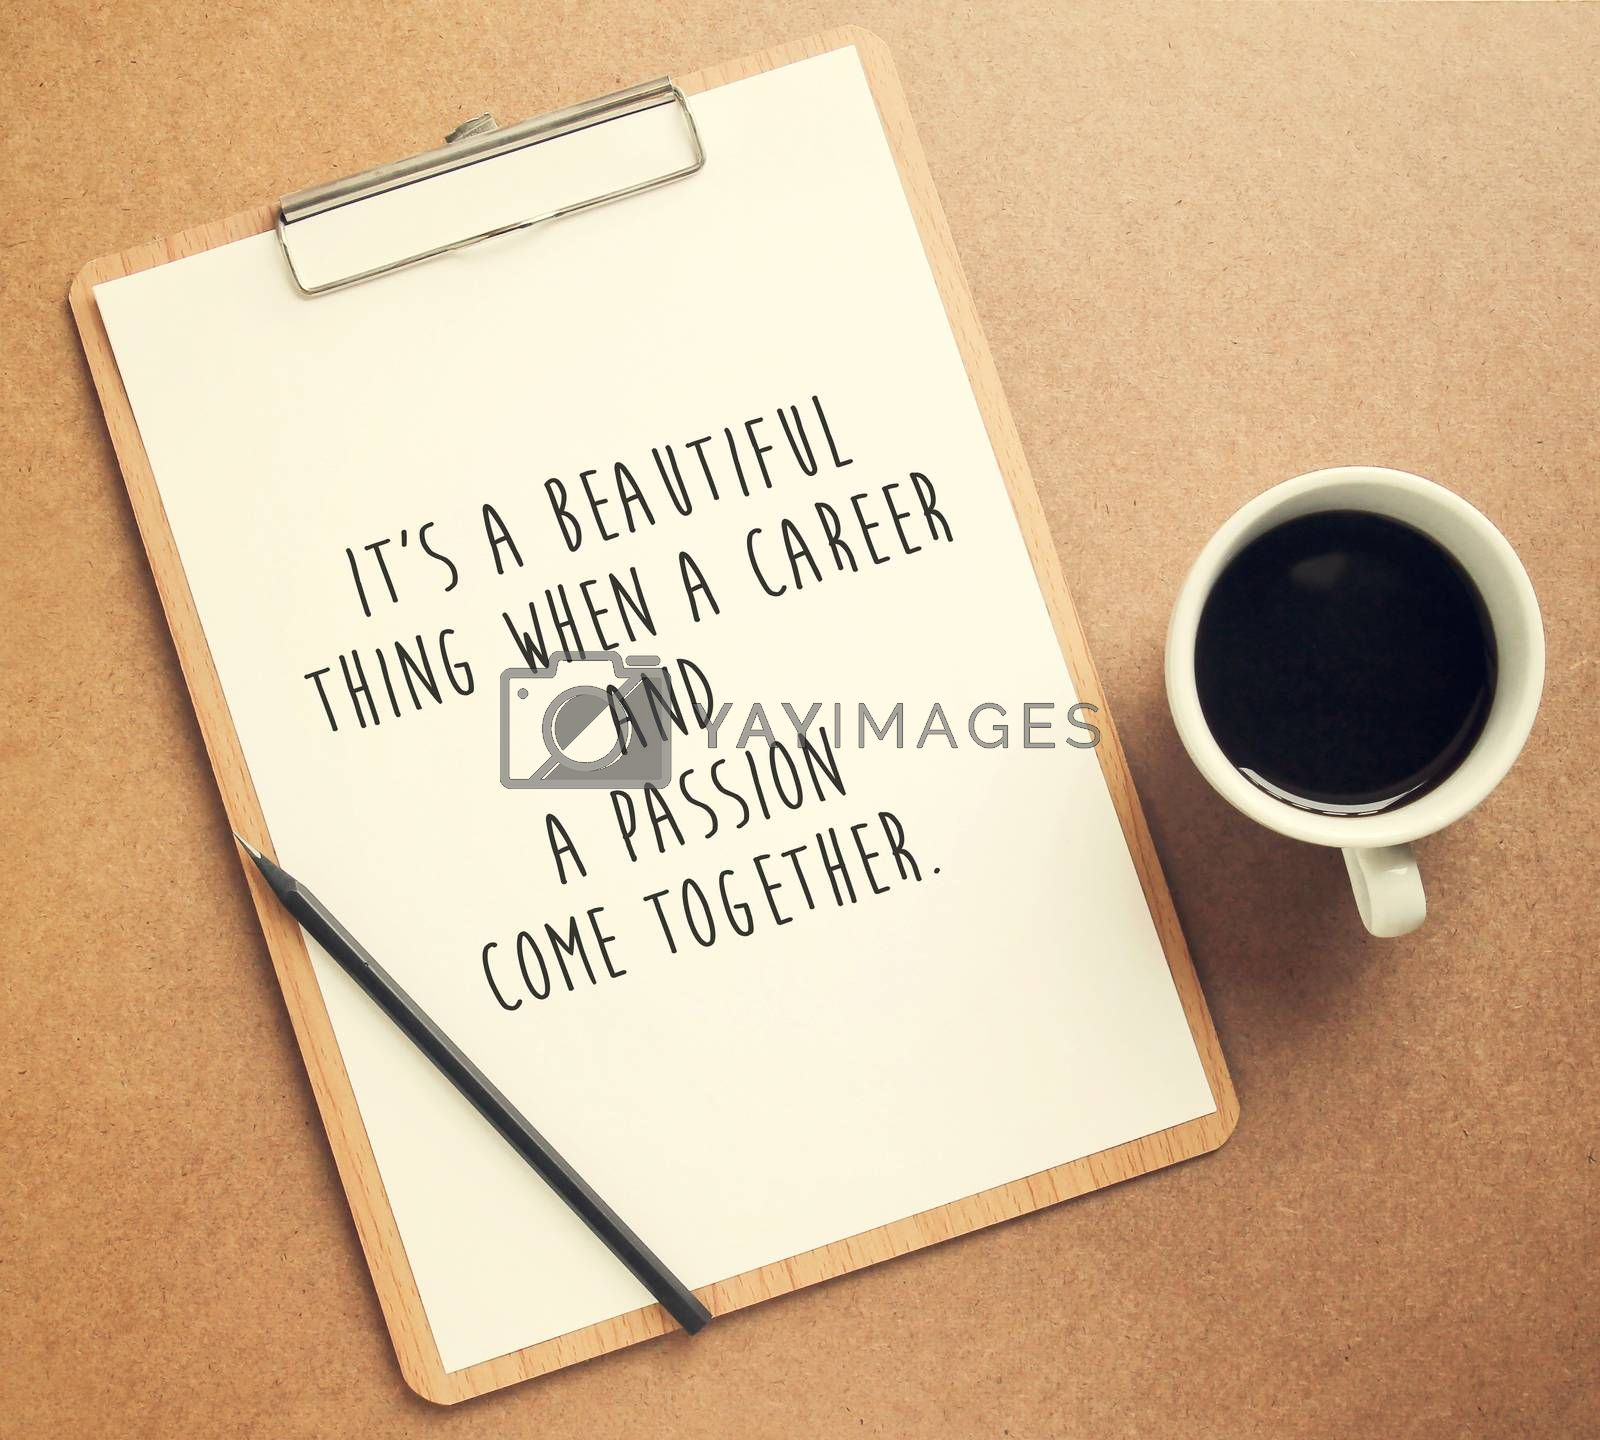 Inspirational motivating quote on clipboard and cup of coffee with retro filter effect